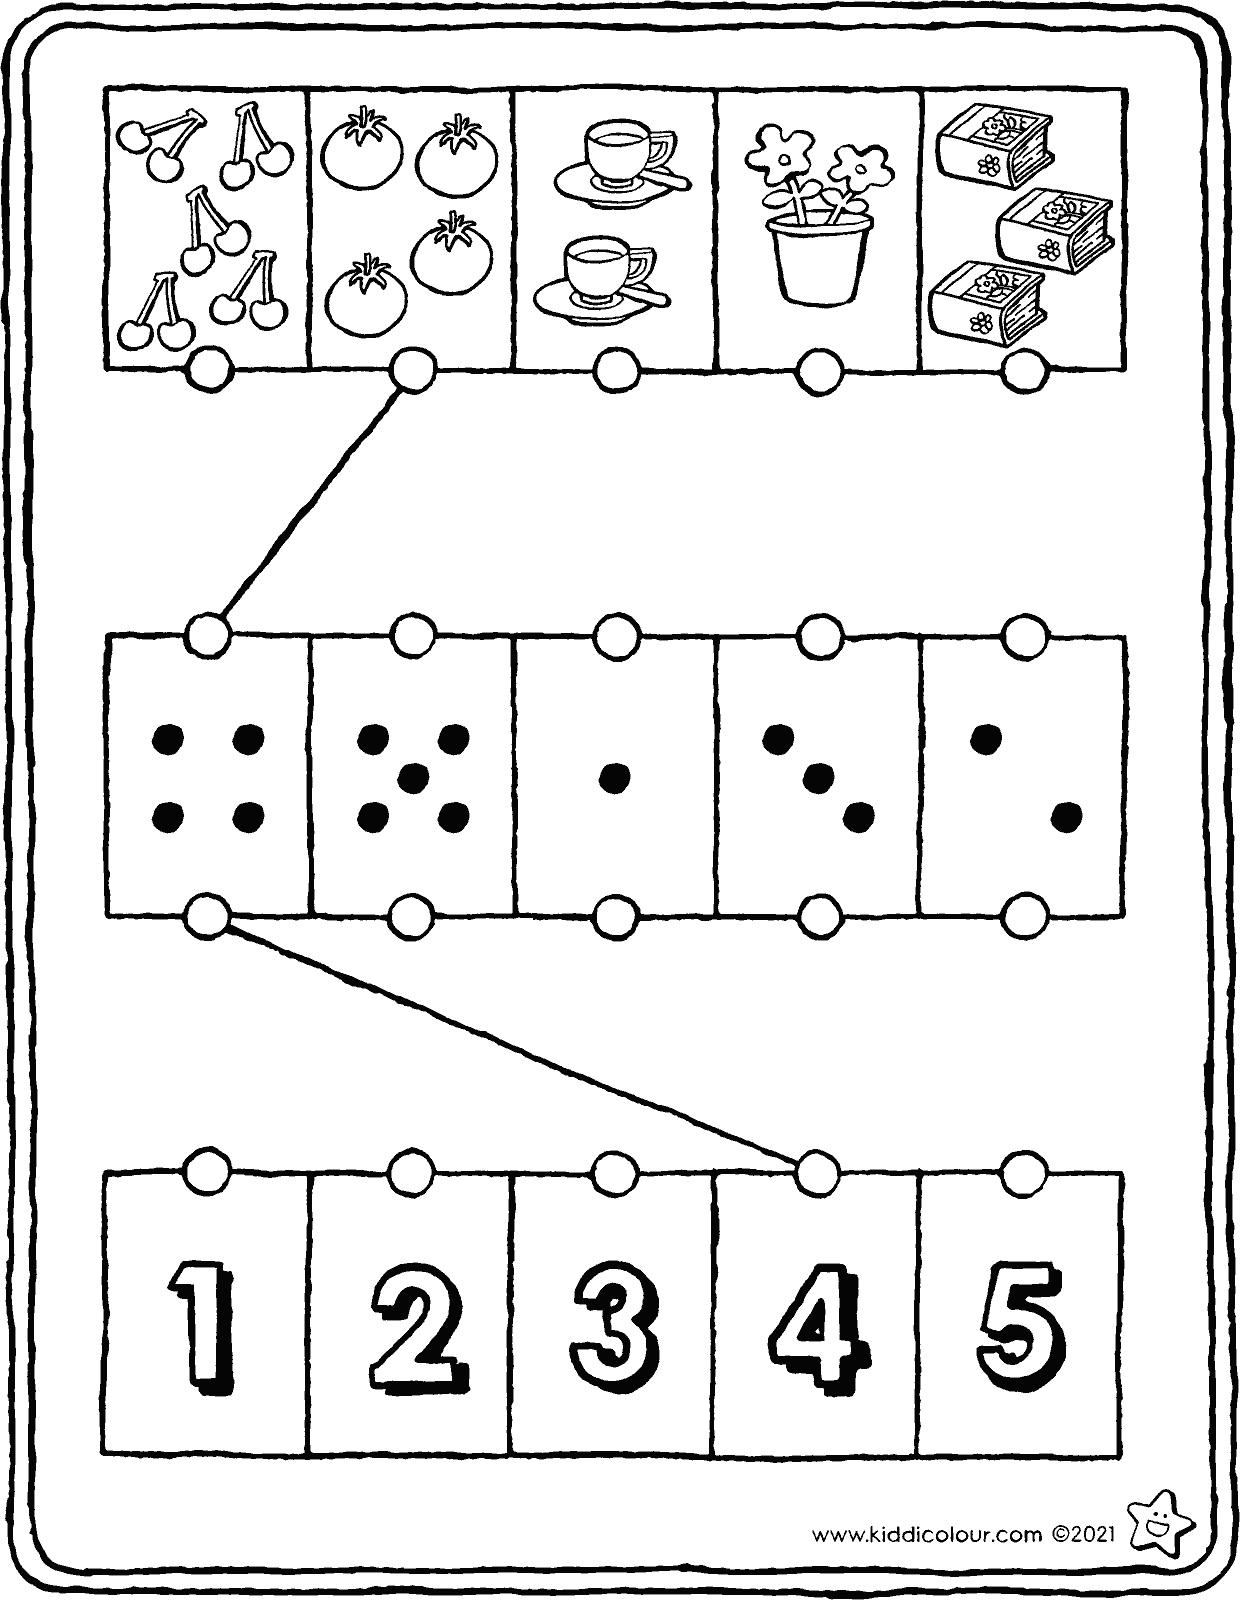 number sense exercise from 1 to 5 colouring page drawing picture 01V